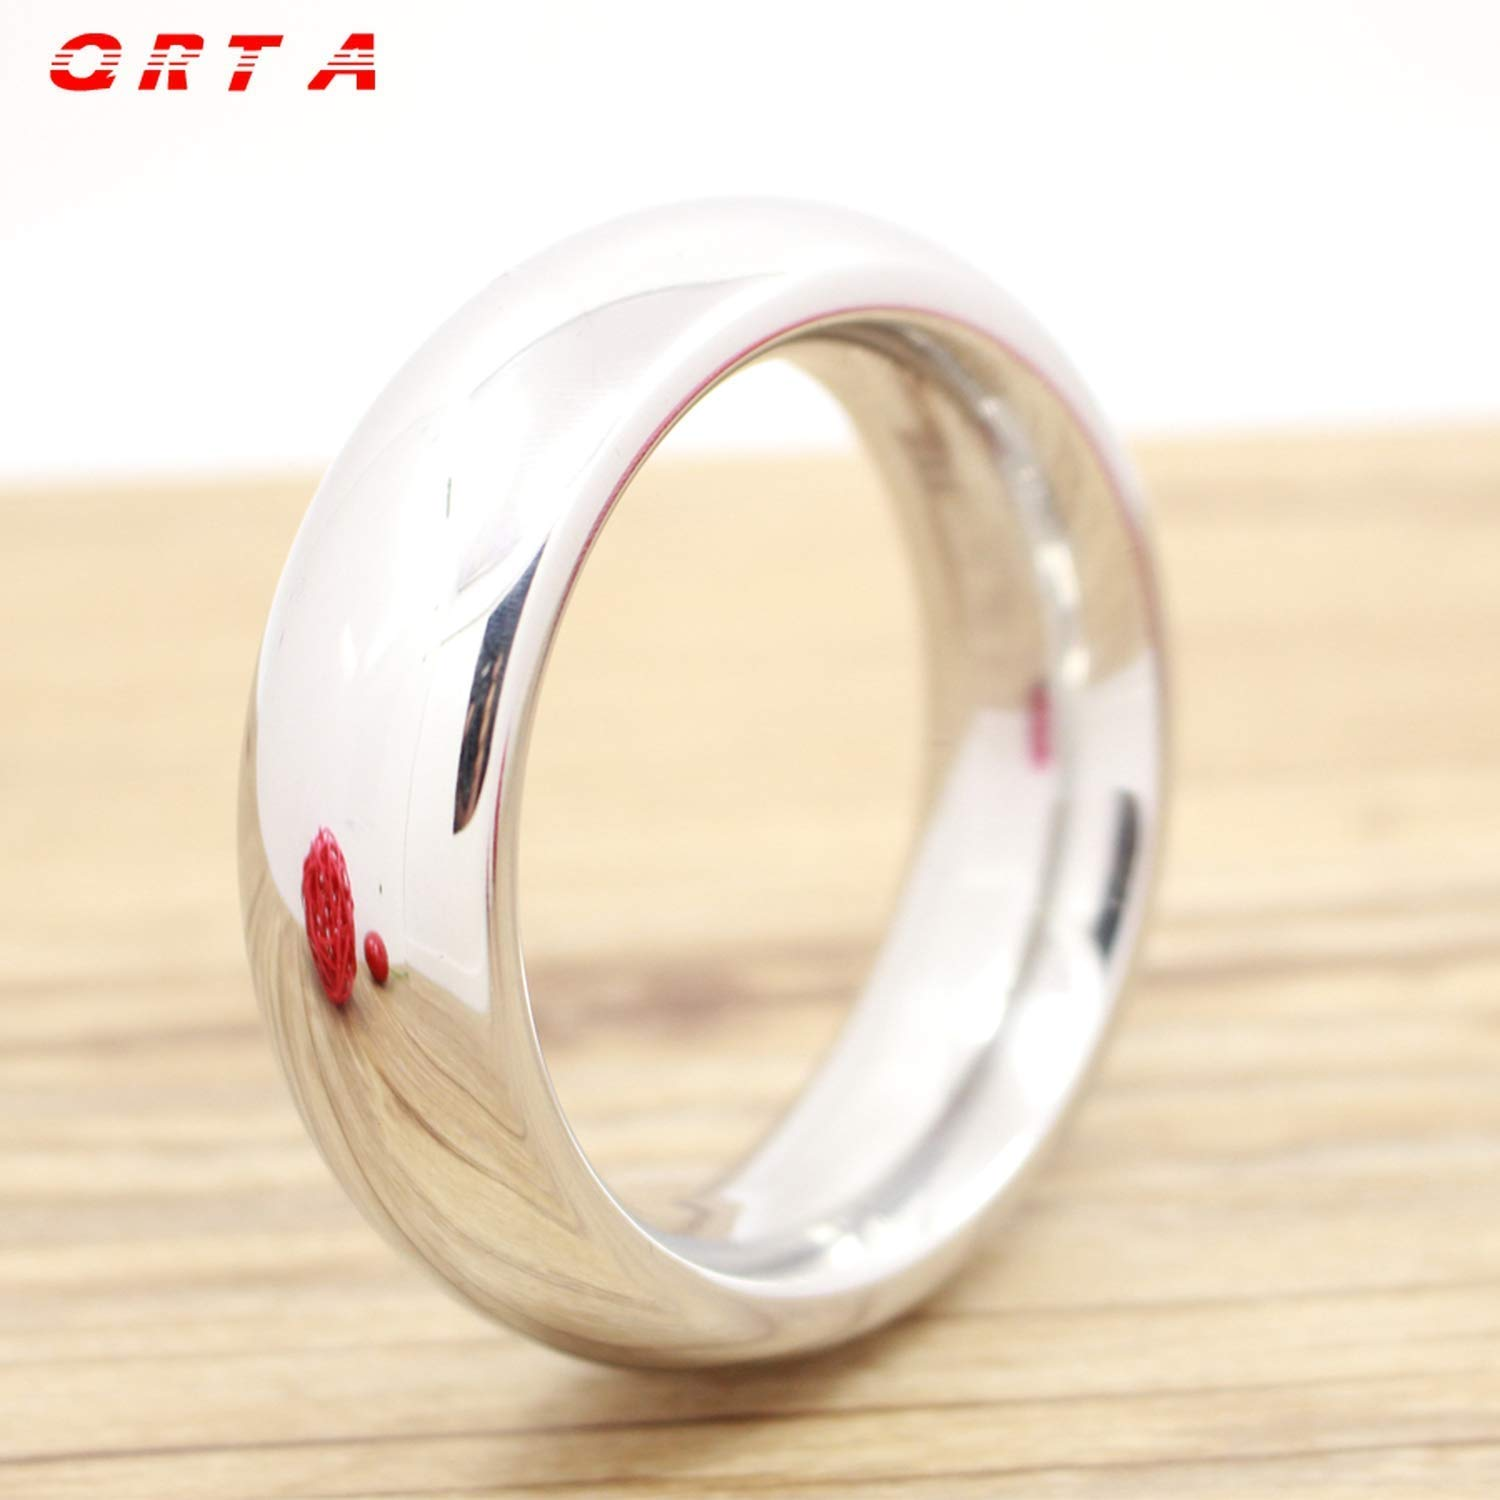 Rings Stainless Steel Ring Round 40/45/50mm Time Delay Rings Male Rings Products,40mm, Rings Ring